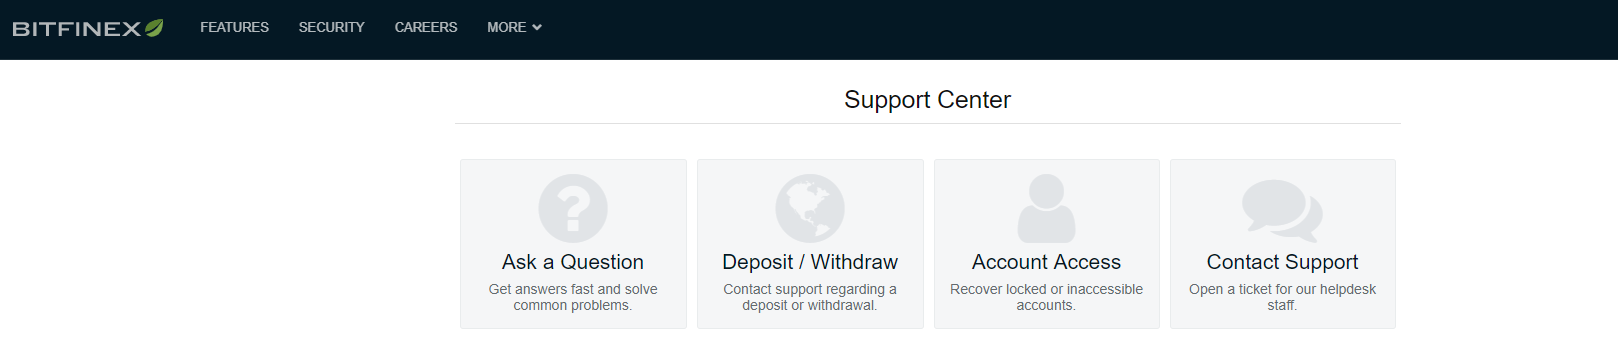 Customer support on Bitfinex platform